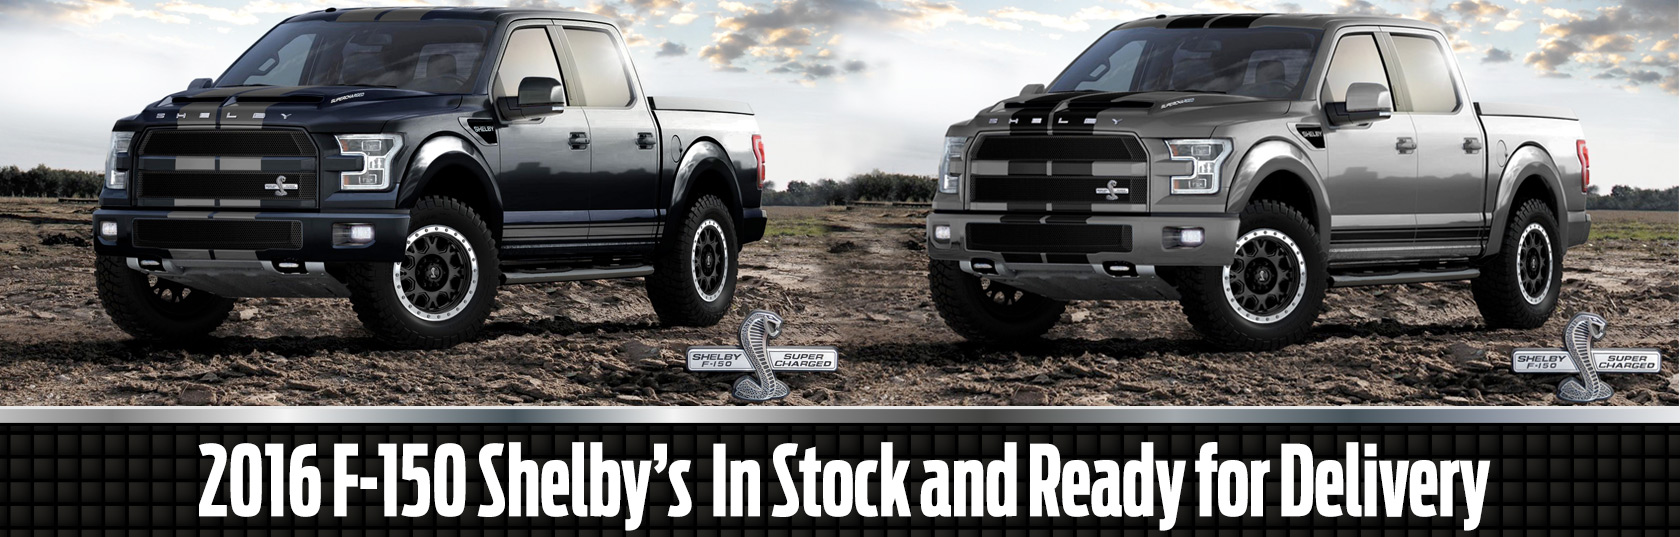 Shelby american is pleased to offer the next ford worthy of the shelby badge the shelby f 150